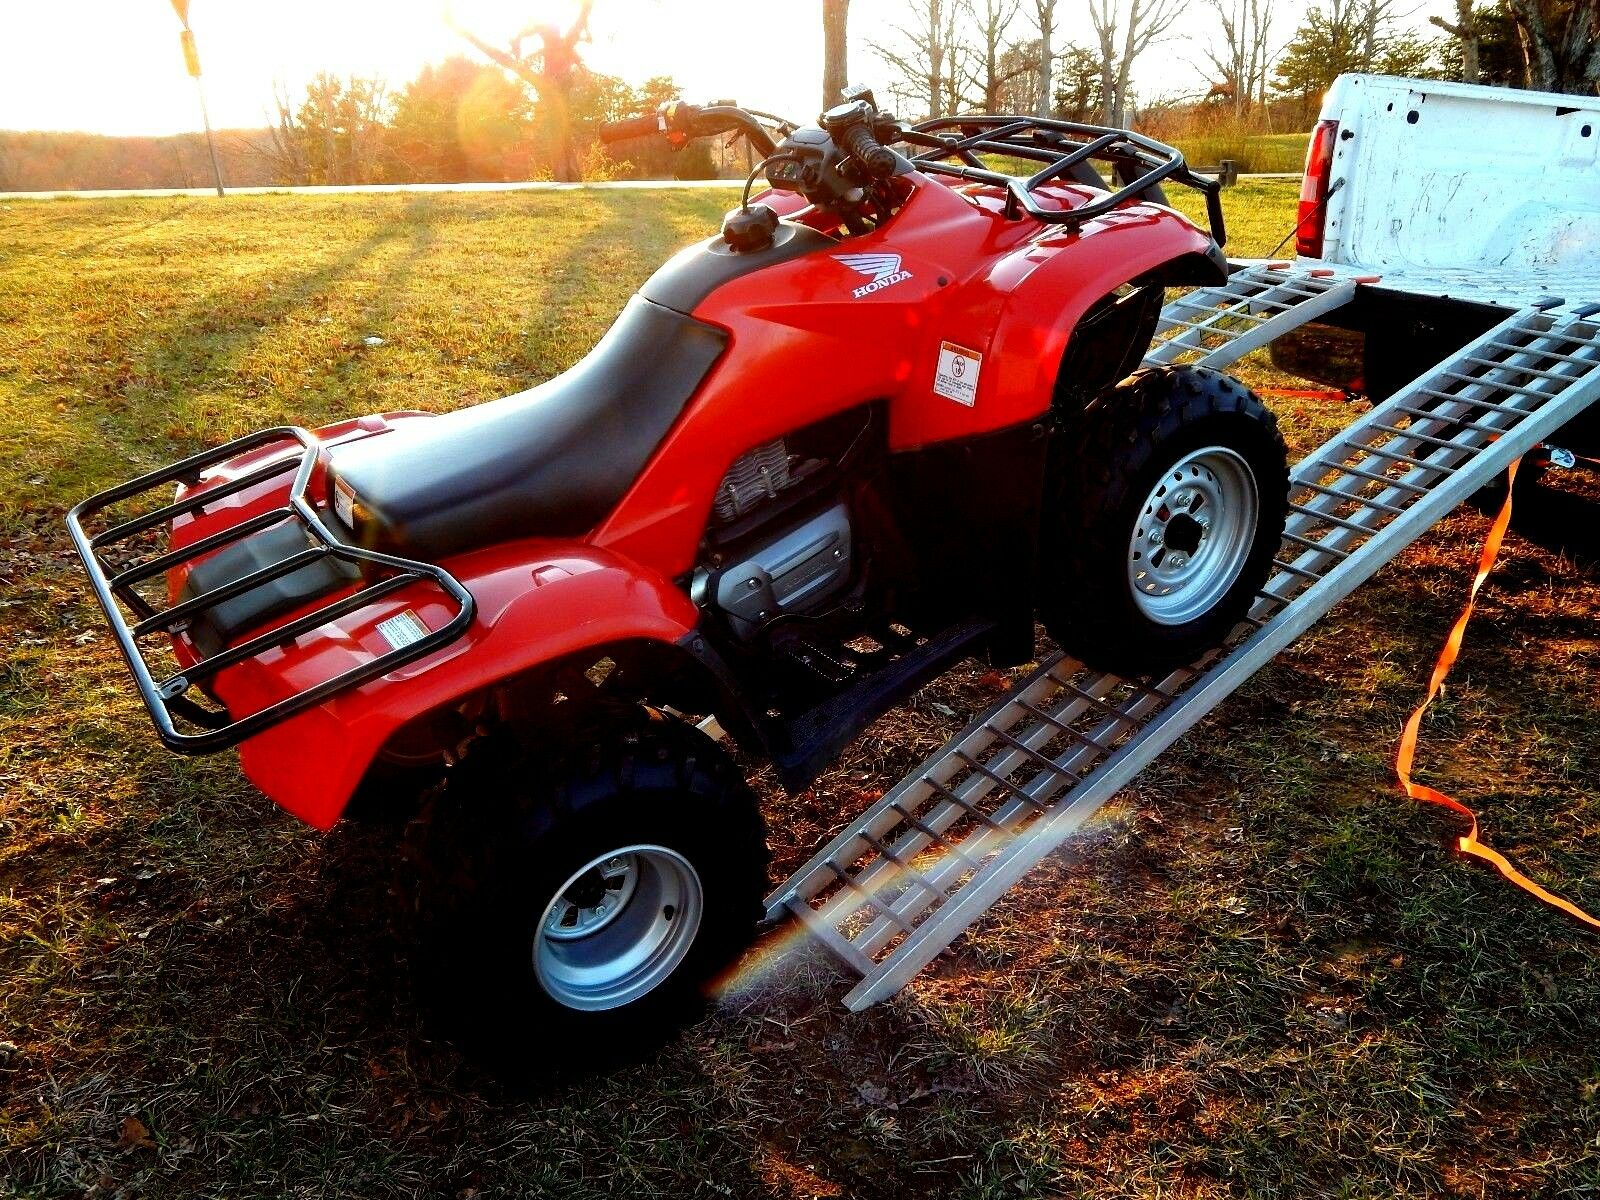 2013 Honda Recon 250 Atv 4 Wheeler 4x2  Very Nice Condition. Garage Kept